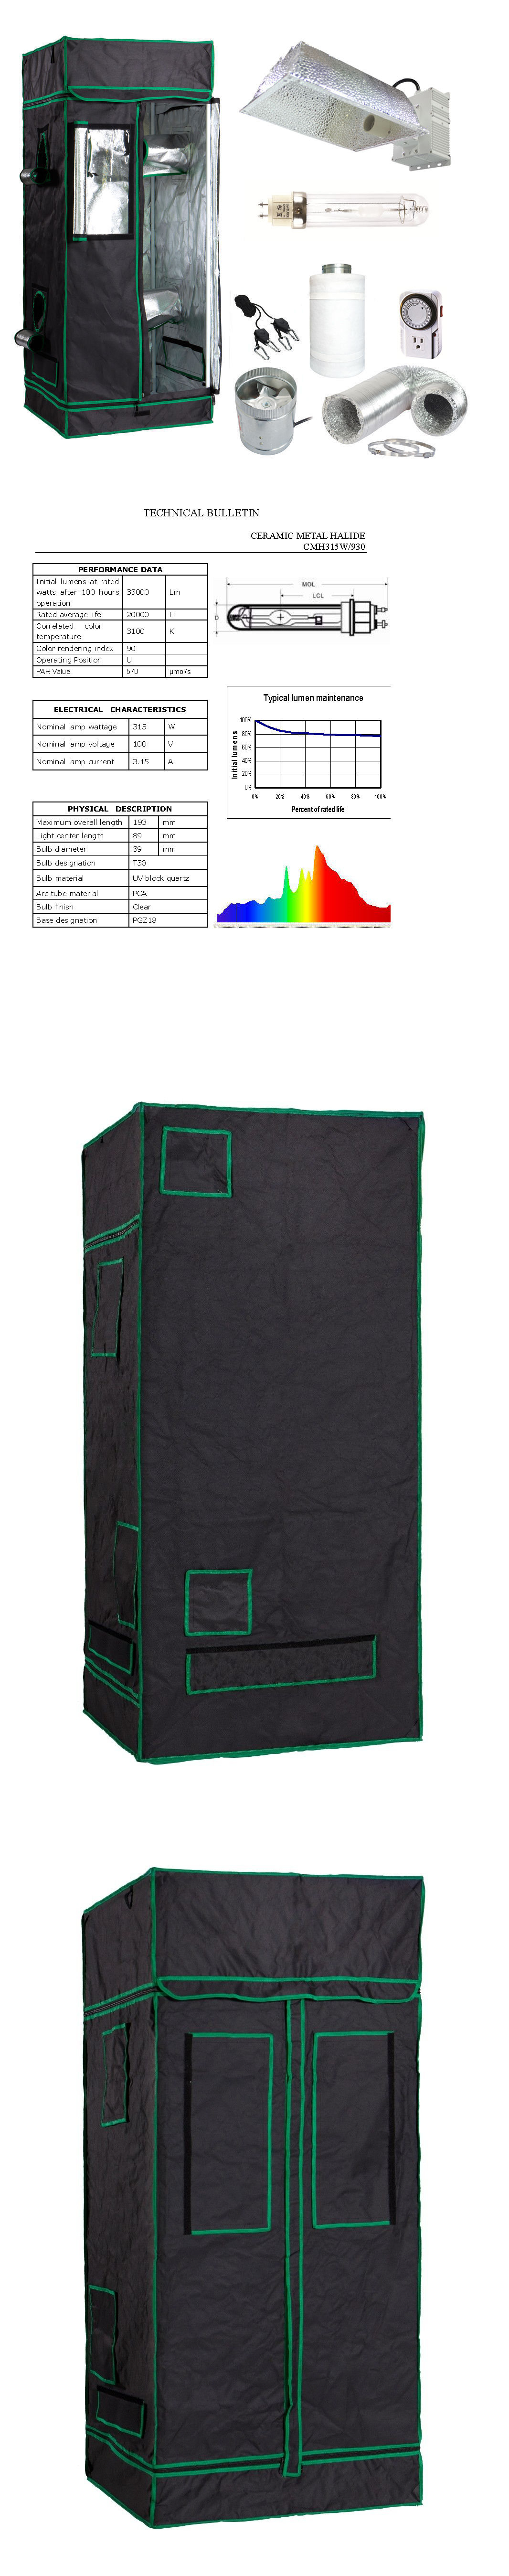 Tents Tarps and Shelves 178993 31X31x71 Grow Tent Kit W 315W Cmh Cdm Kit And  sc 1 st  Pinterest & Tents Tarps and Shelves 178993: 31X31x71 Grow Tent Kit W 315W Cmh ...